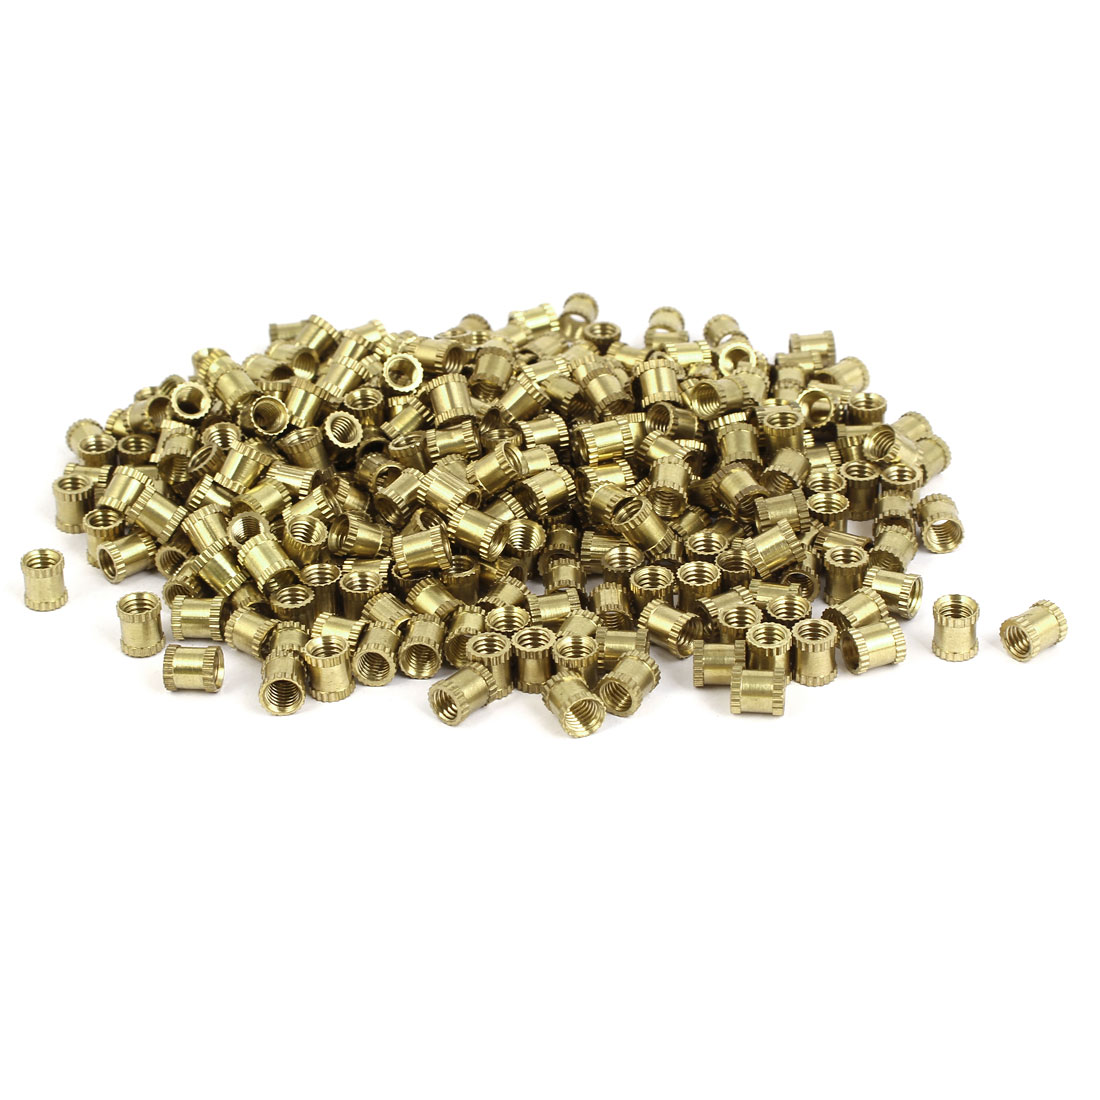 M5 x 7mm x 6.3mm Brass Cylinder Knurled Threaded Insert Embedded Nuts 500PCS